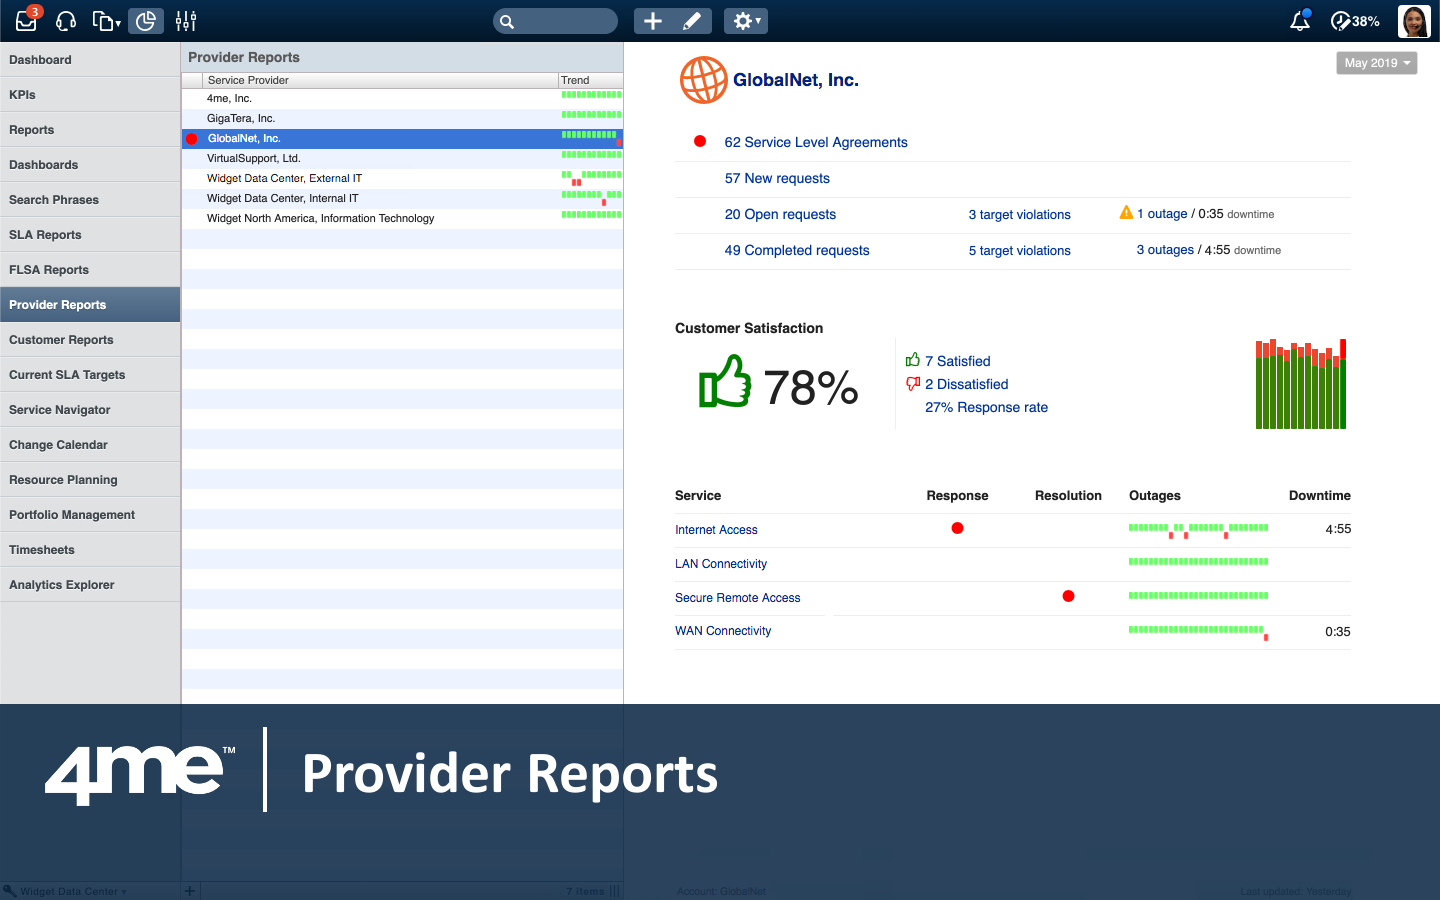 Real-time reporting on the quality of service received from each internal and external provider.